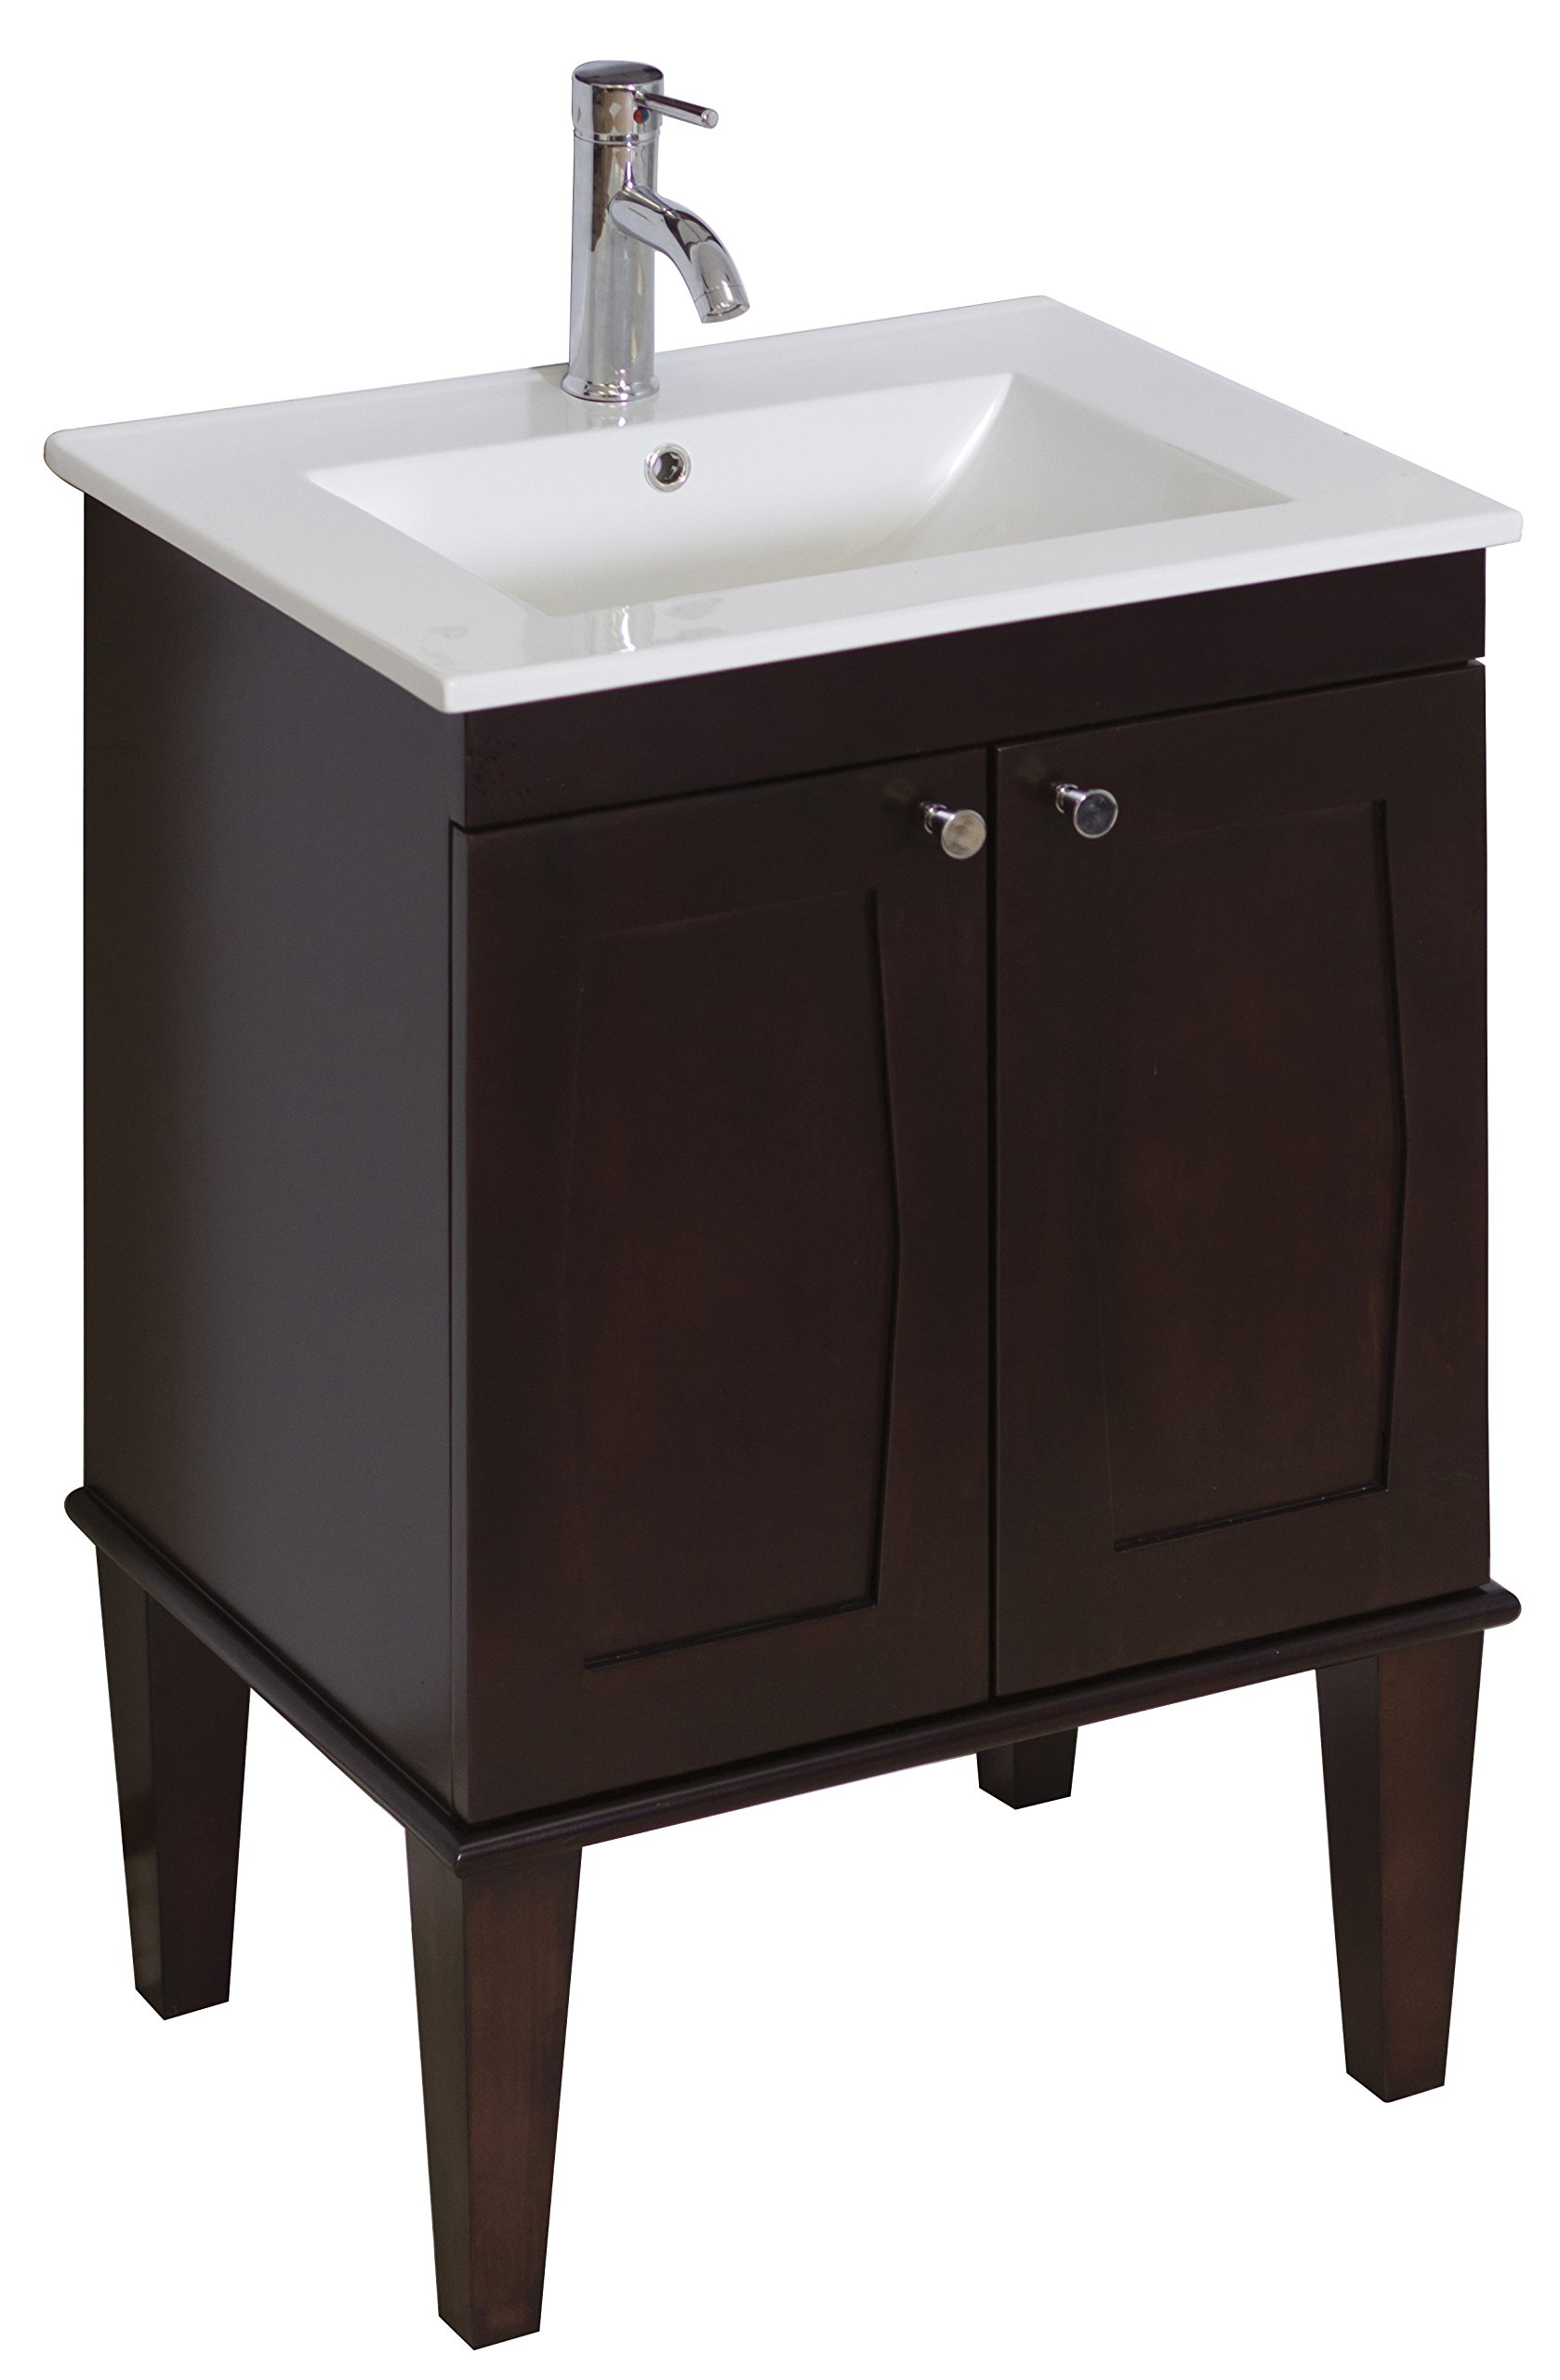 23-in. W x 18-in. D Transitional Birch Wood-Veneer Vanity Base Only In Antique Walnut by American Imaginations